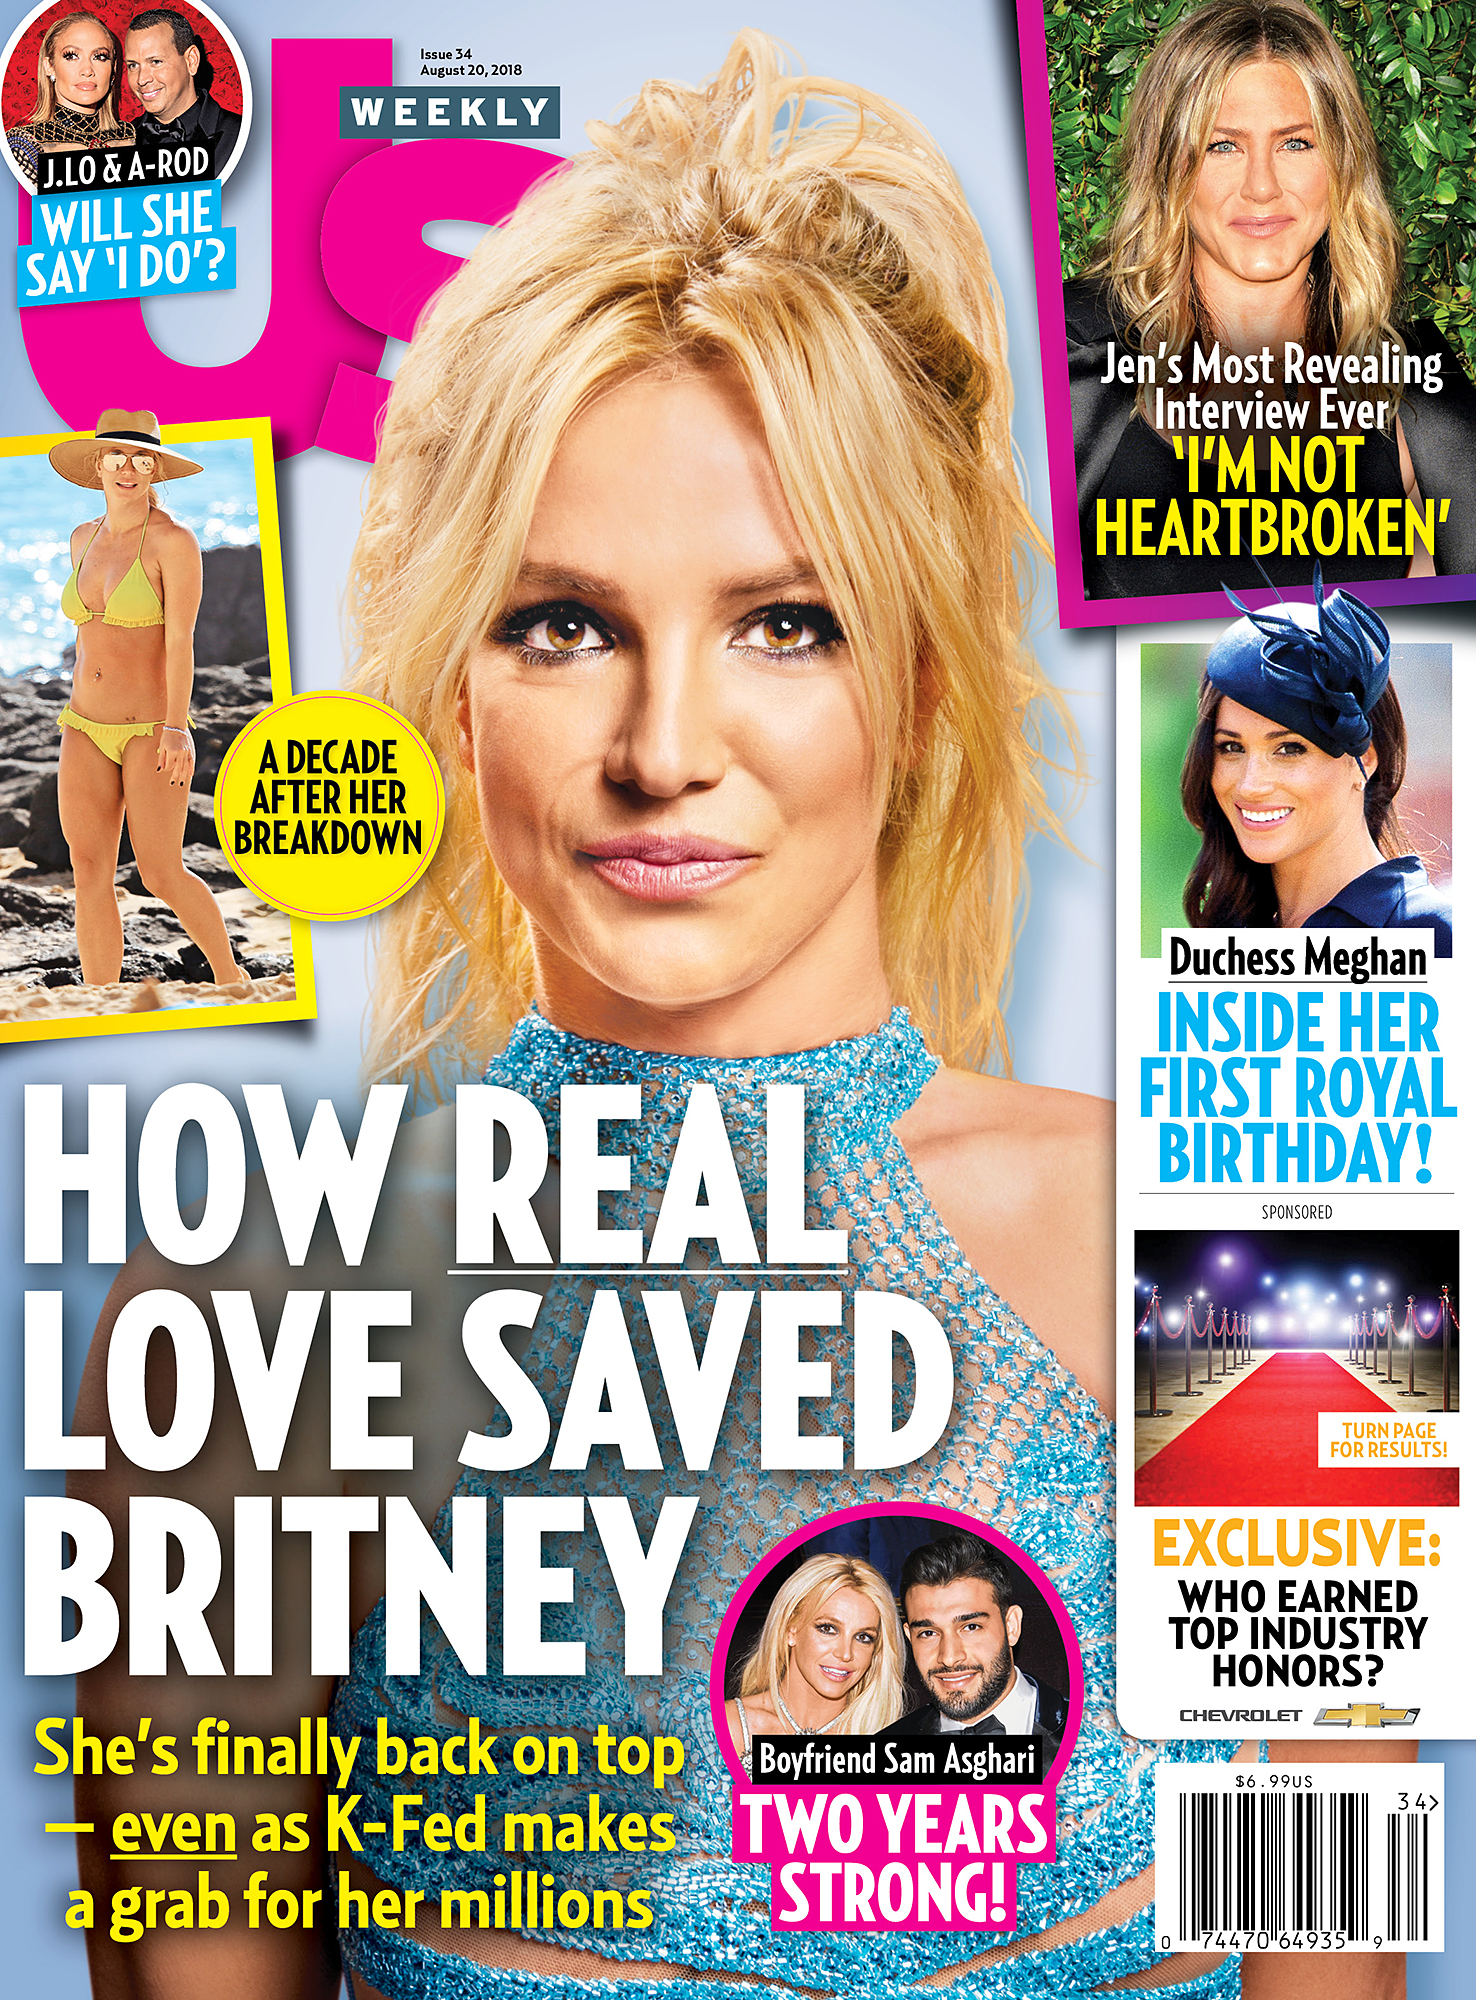 Us Weekly Cover Britney Spears